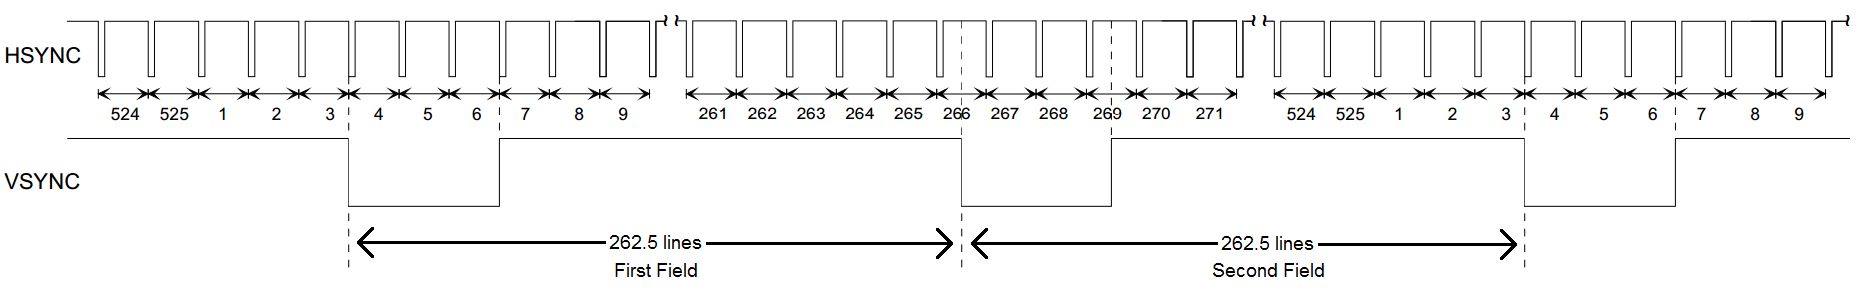 HSYNC and VSYNC waveforms representing 60Hz standard definition video. Line numbers are labeled as are the two unique fields required for interlacing.